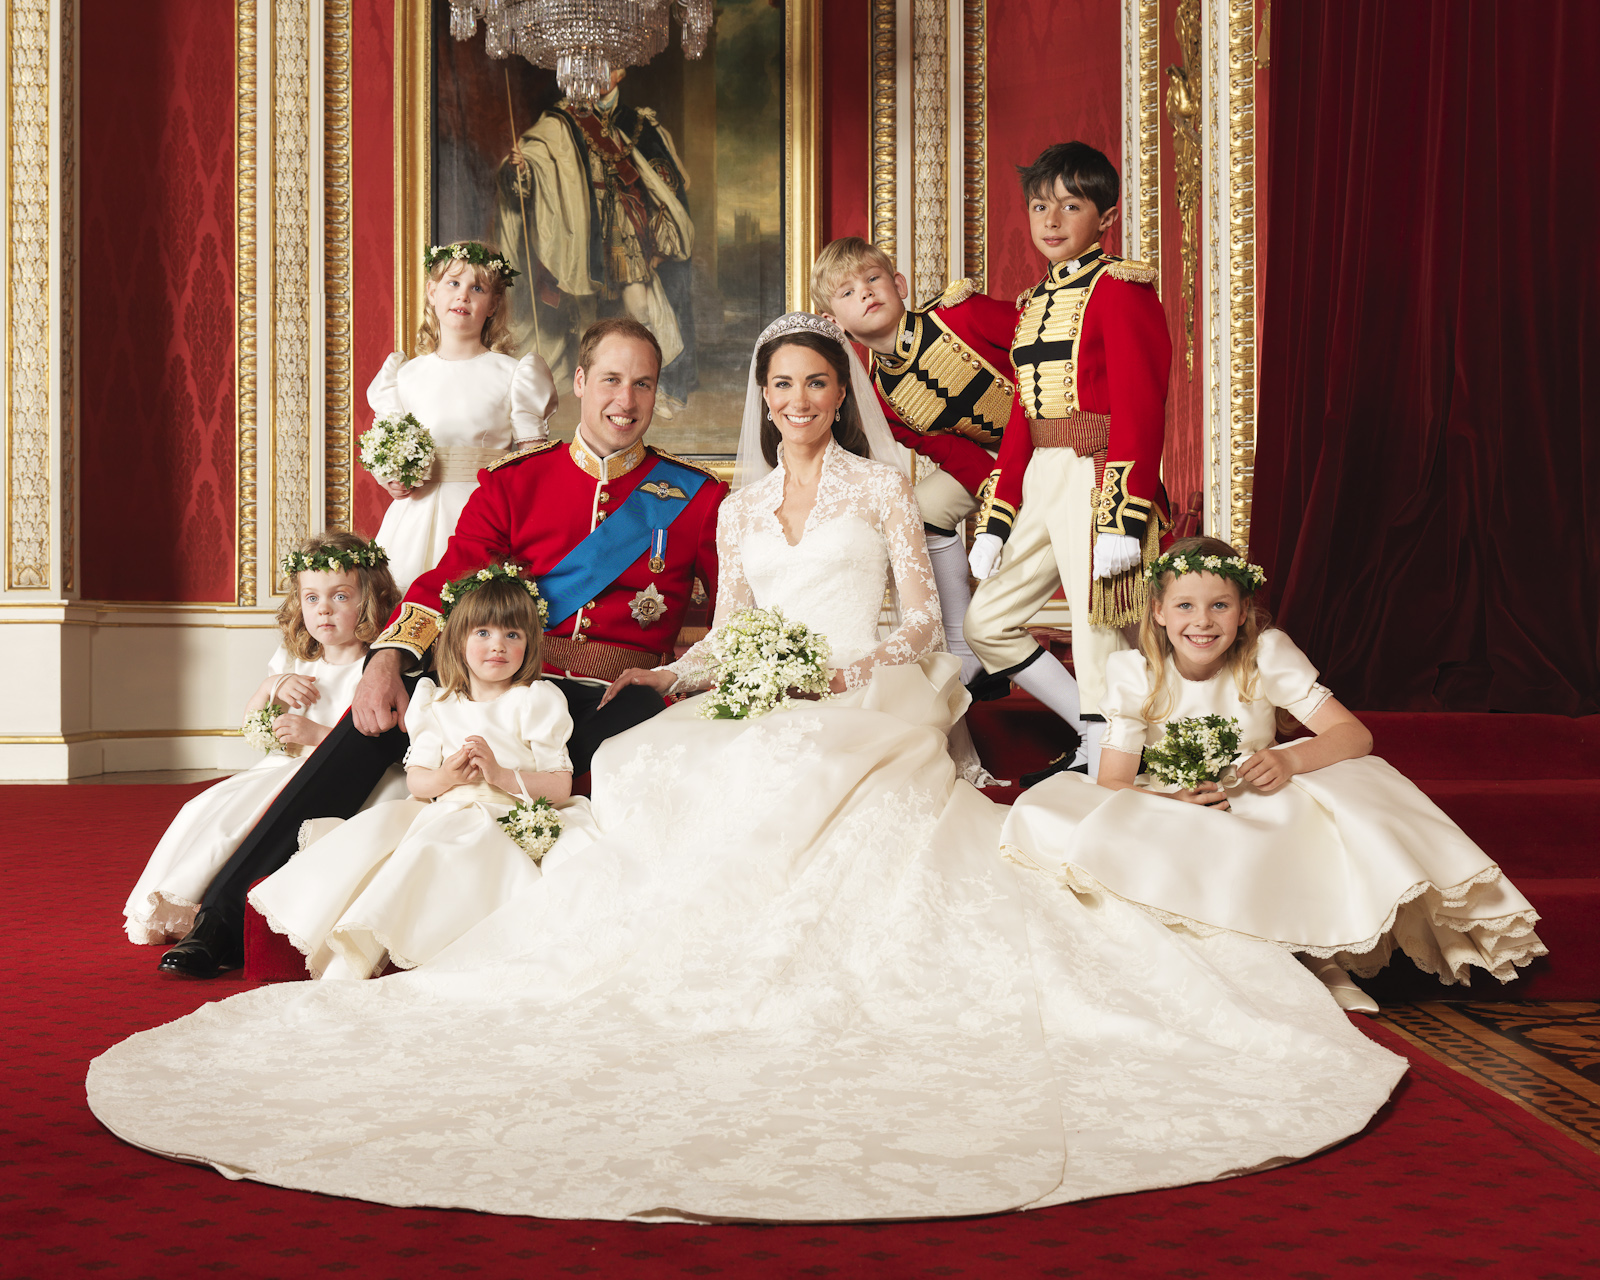 How Much Do British Royal Family Make Annually?